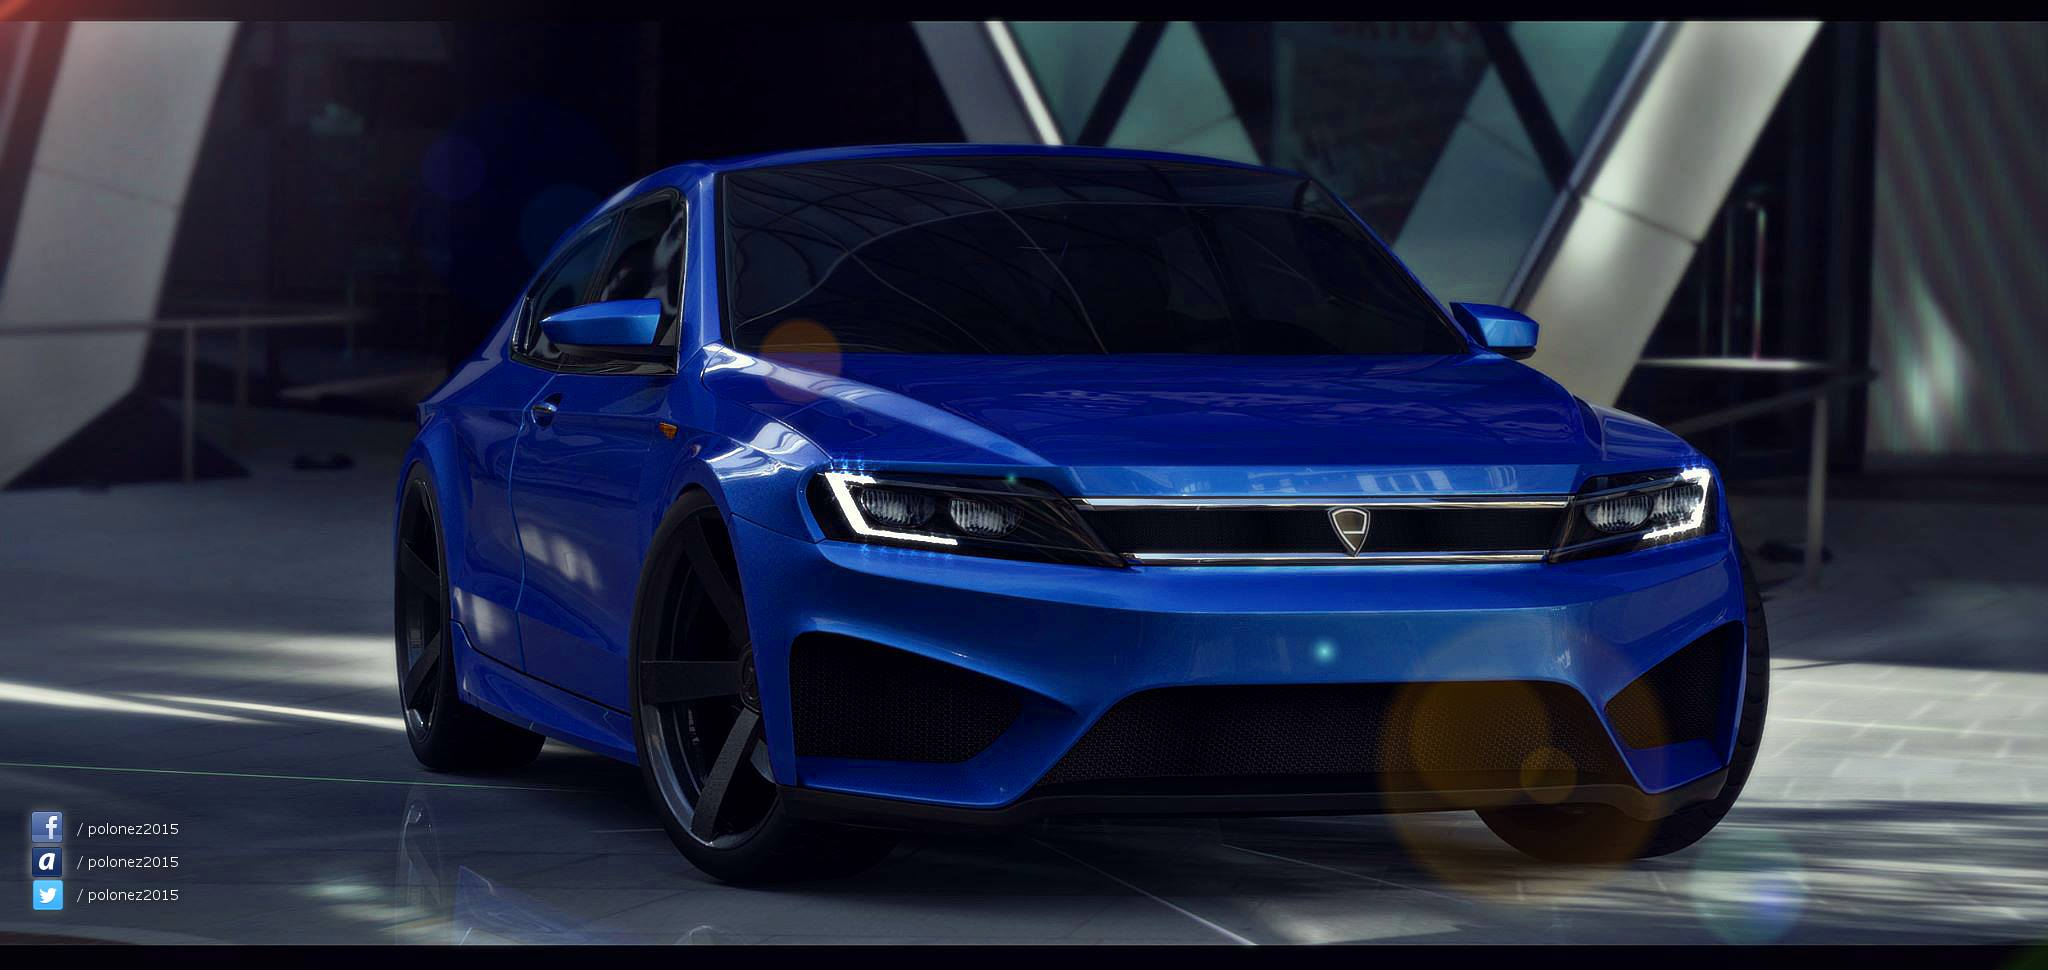 New 2015 Polonez Concept Car Looks Pretty Damn Cool